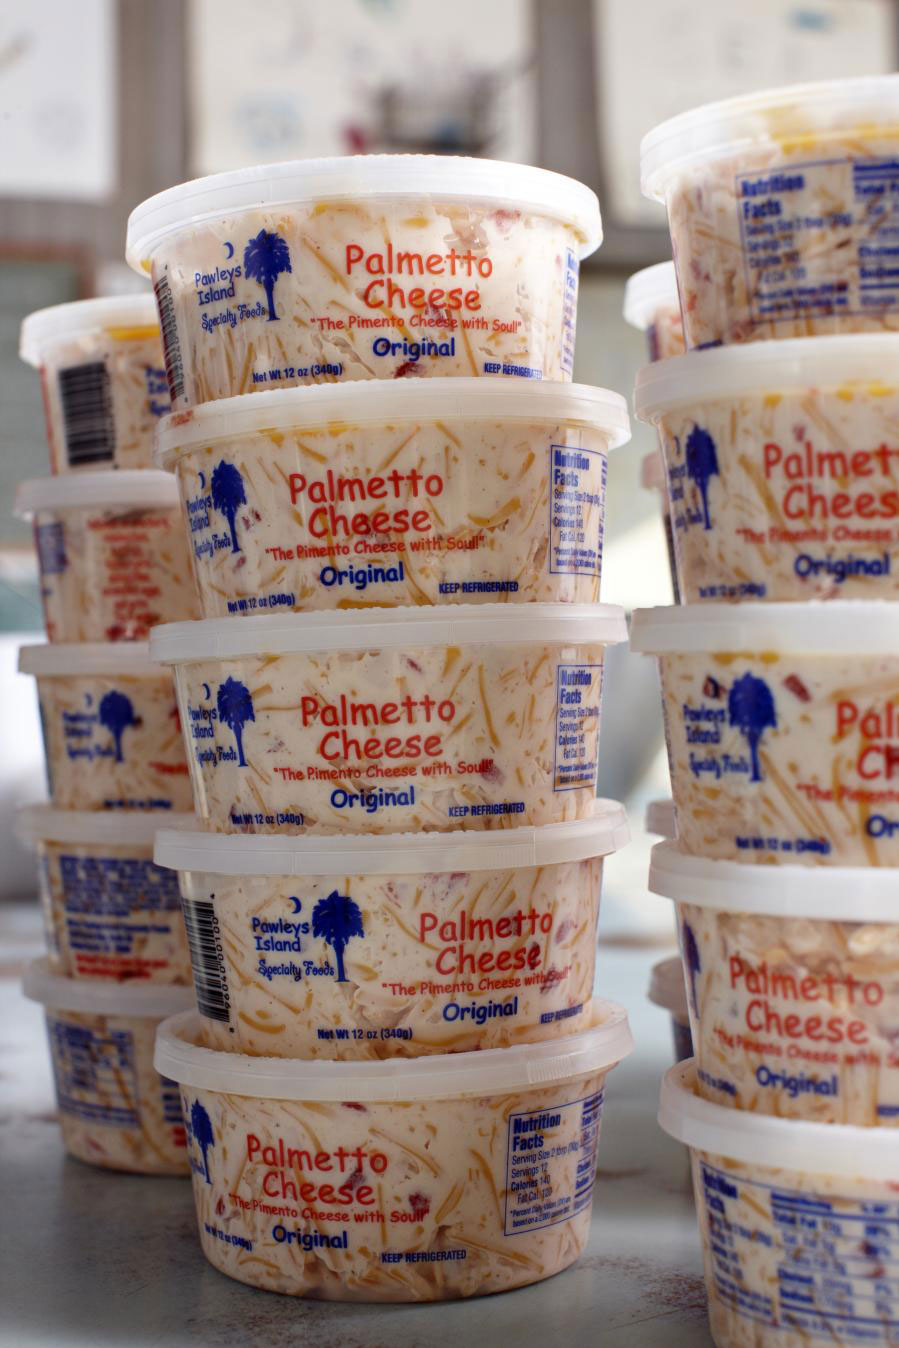 Palmetto Cheese Containers